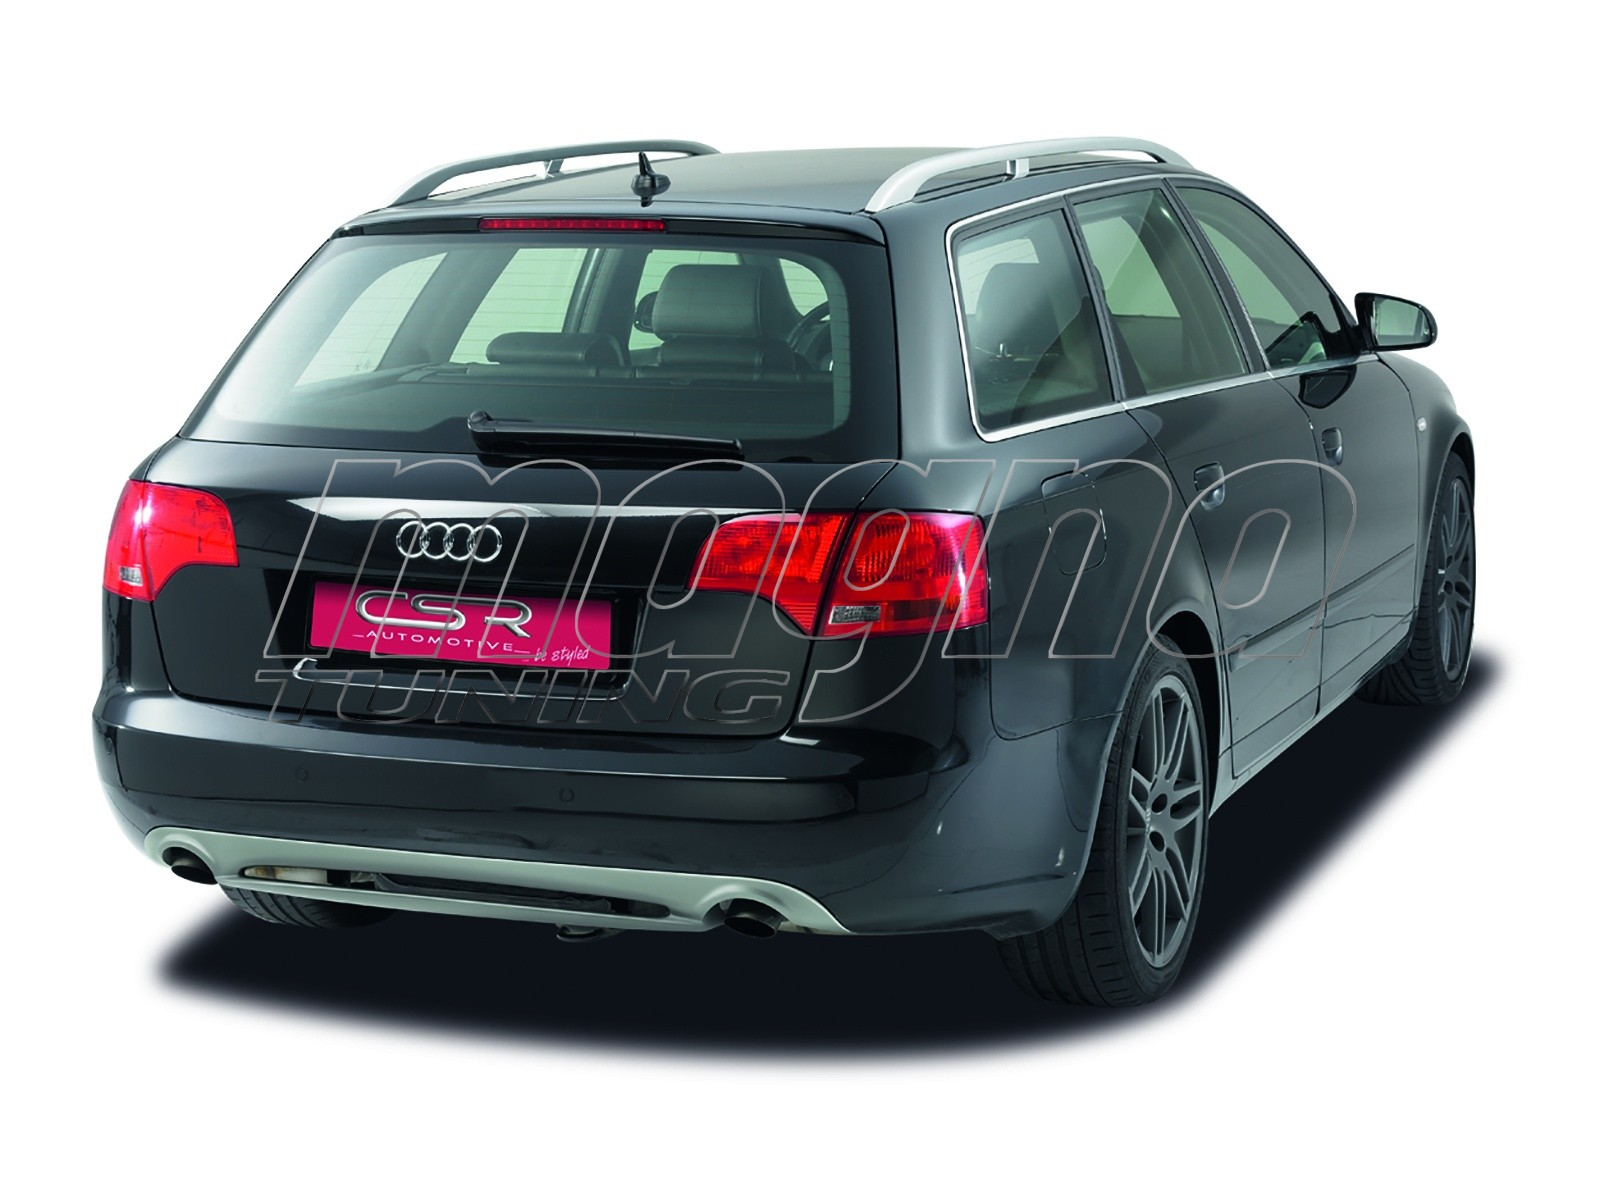 audi a4 b7 8e avant x line rear bumper extension. Black Bedroom Furniture Sets. Home Design Ideas